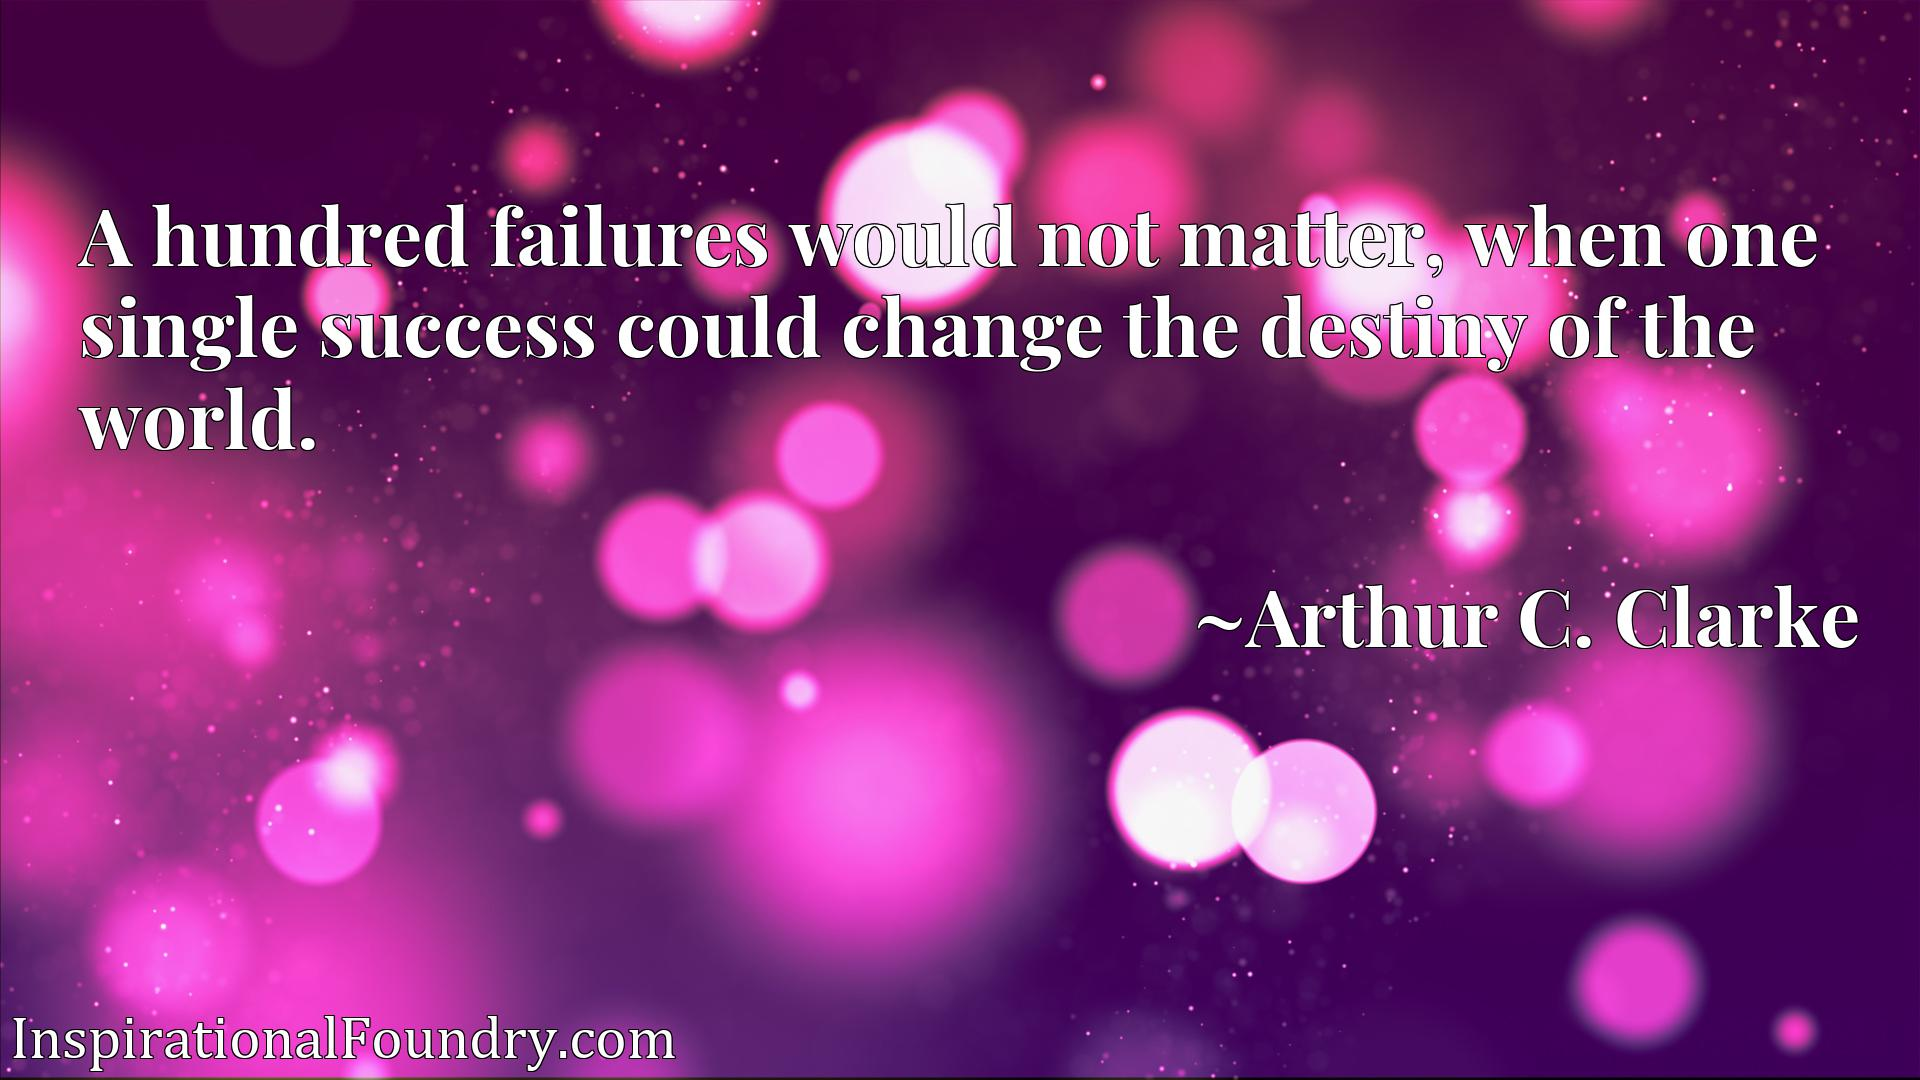 A hundred failures would not matter, when one single success could change the destiny of the world.